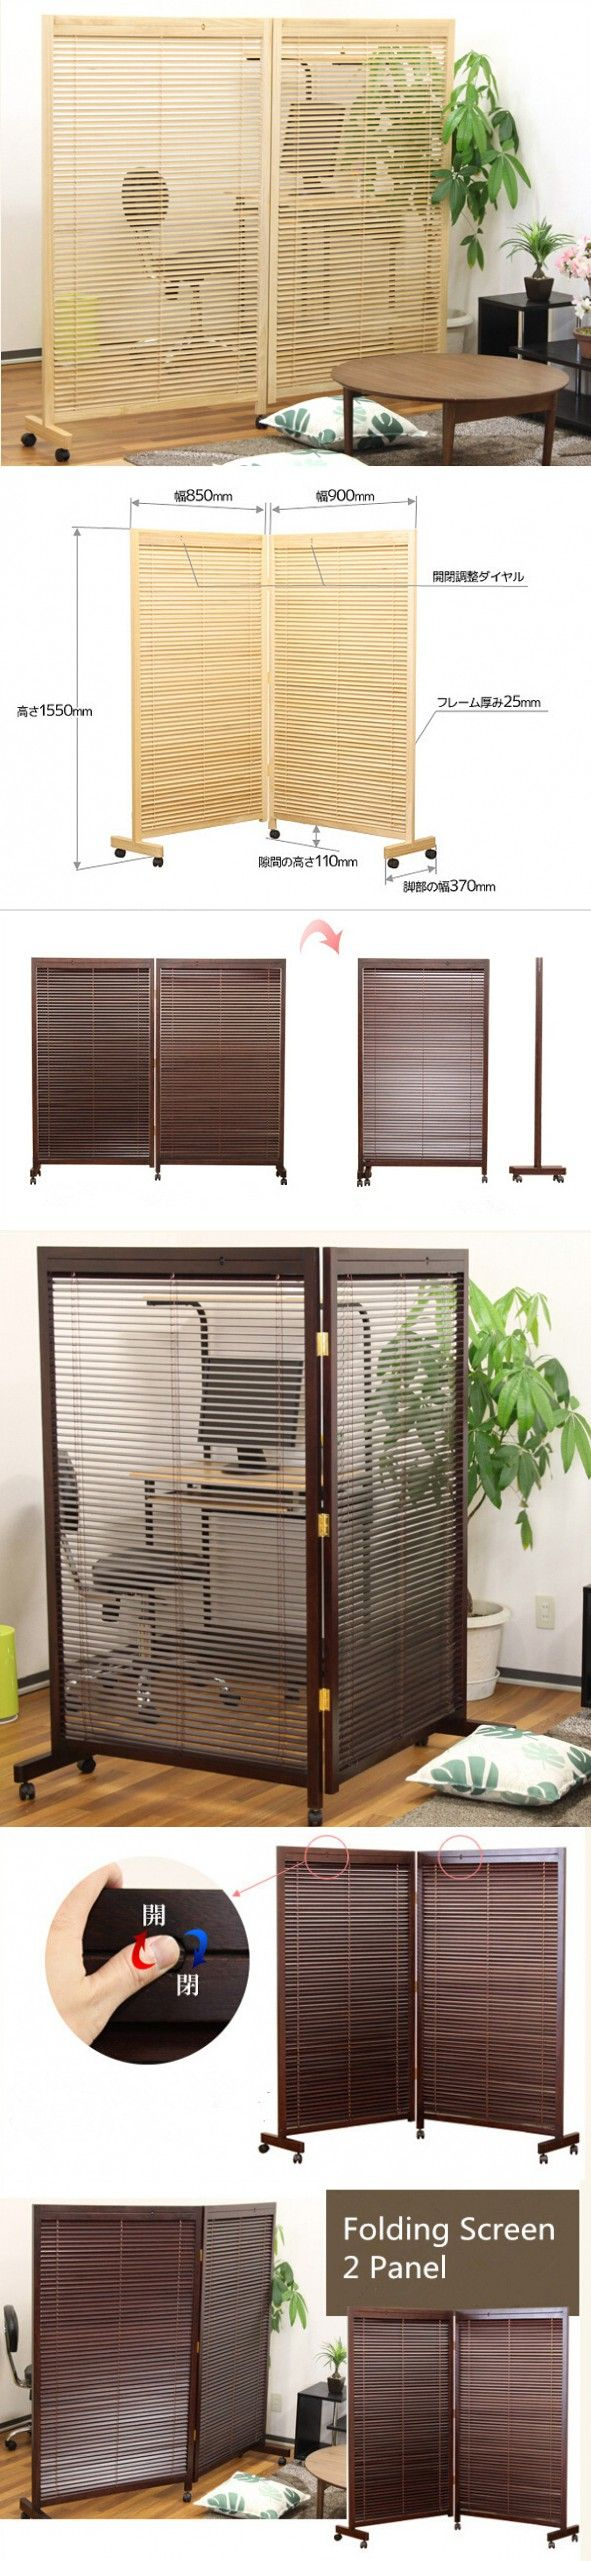 Japanese Movable Wood Partition Wall 2 Panel Folding Screen Room Divider  Home Decor Oriental Decorative Portable Asian Furniture $179